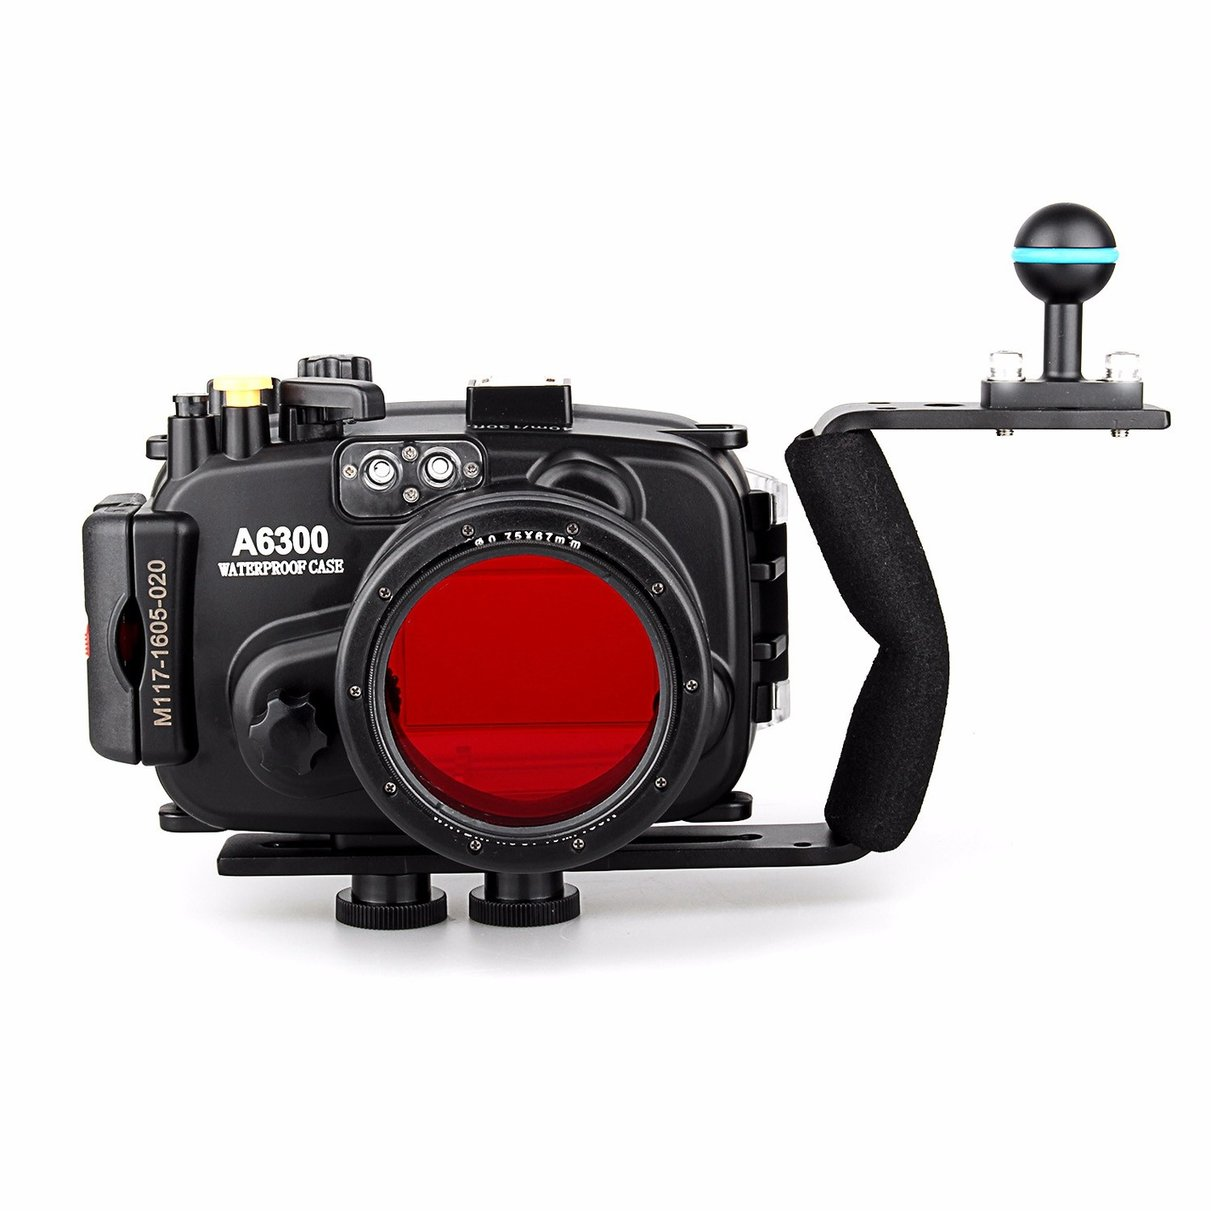 Meikon 40m/130ft Waterproof Underwater Camera Housing Case for A6300 w/ 16-50mm Lens + Aluminium Diving handle +67mm Red Filter